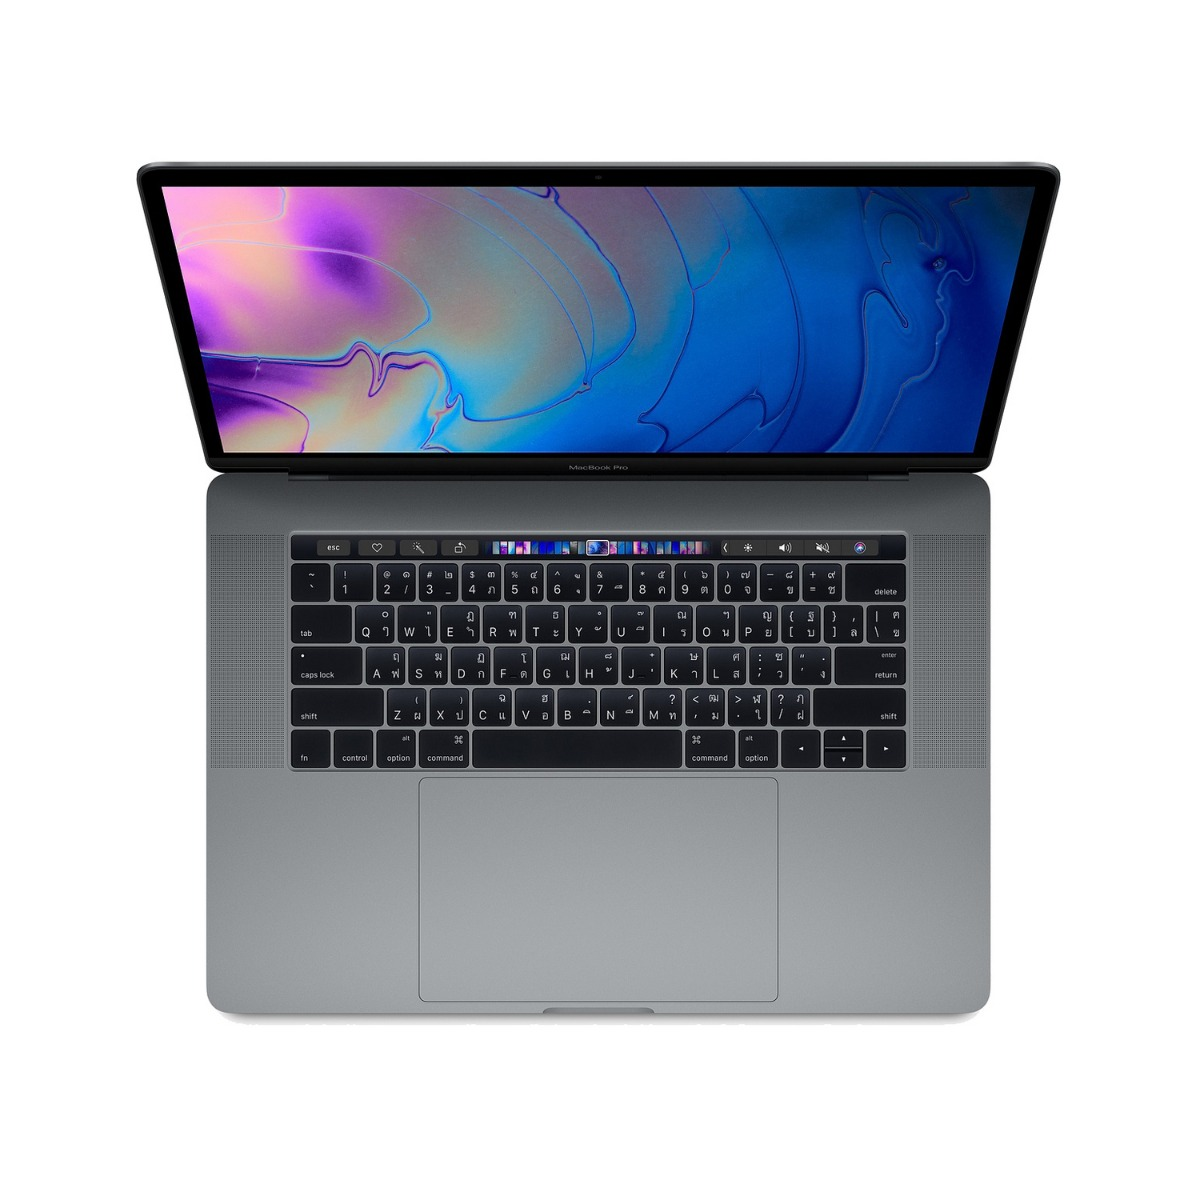 """Macbook Pro with Touch Bar 2018 (15.6"""", RAM 16GB, 256GB, Space Grey)"""